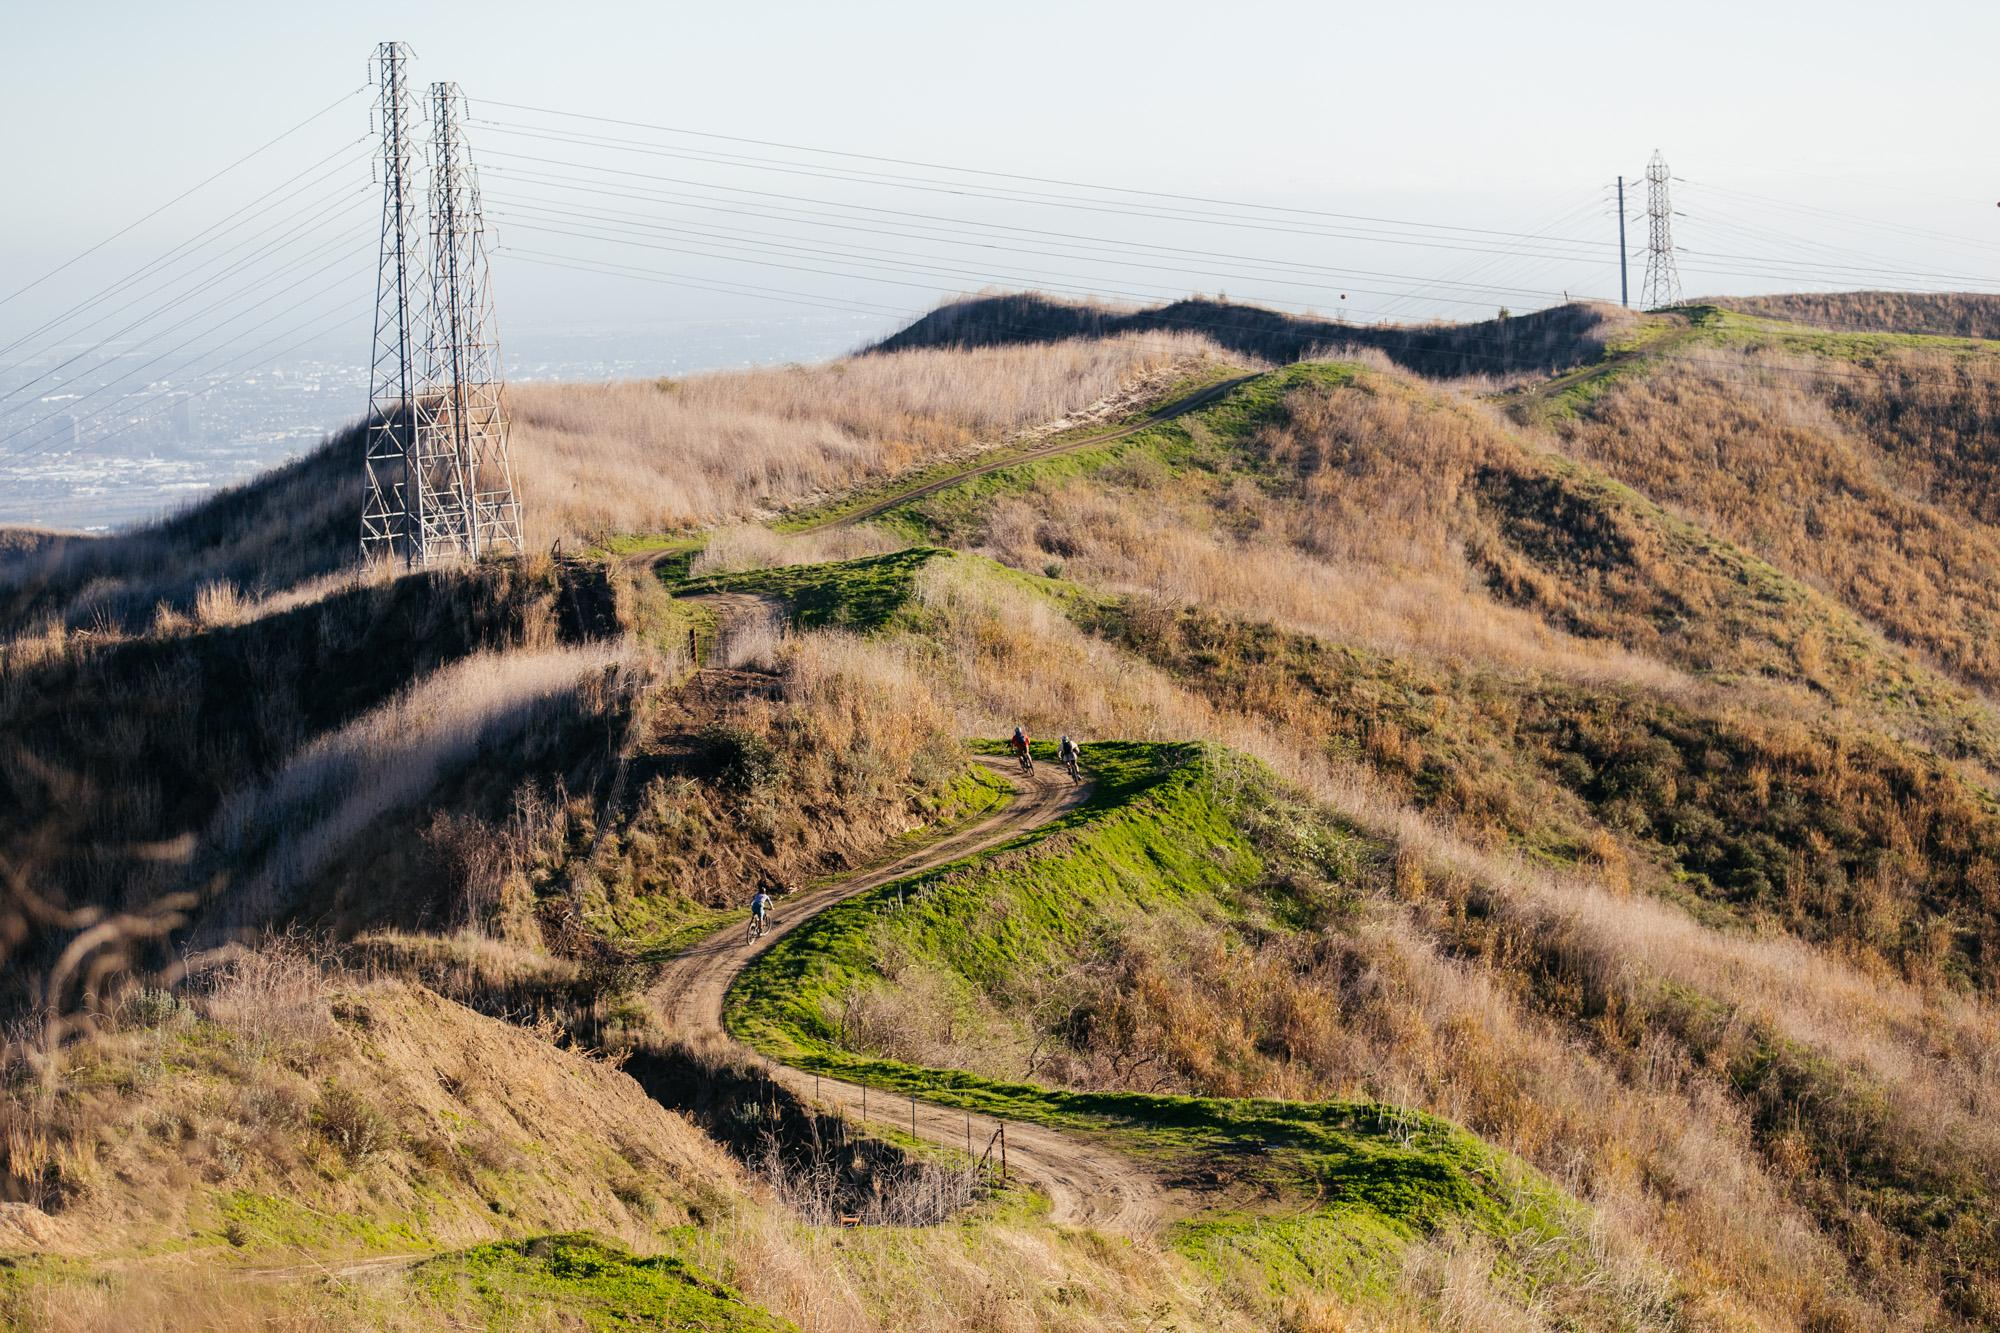 Harmon Canyon: Turning our Hillsides into Trails, Not Putting them into Barrels